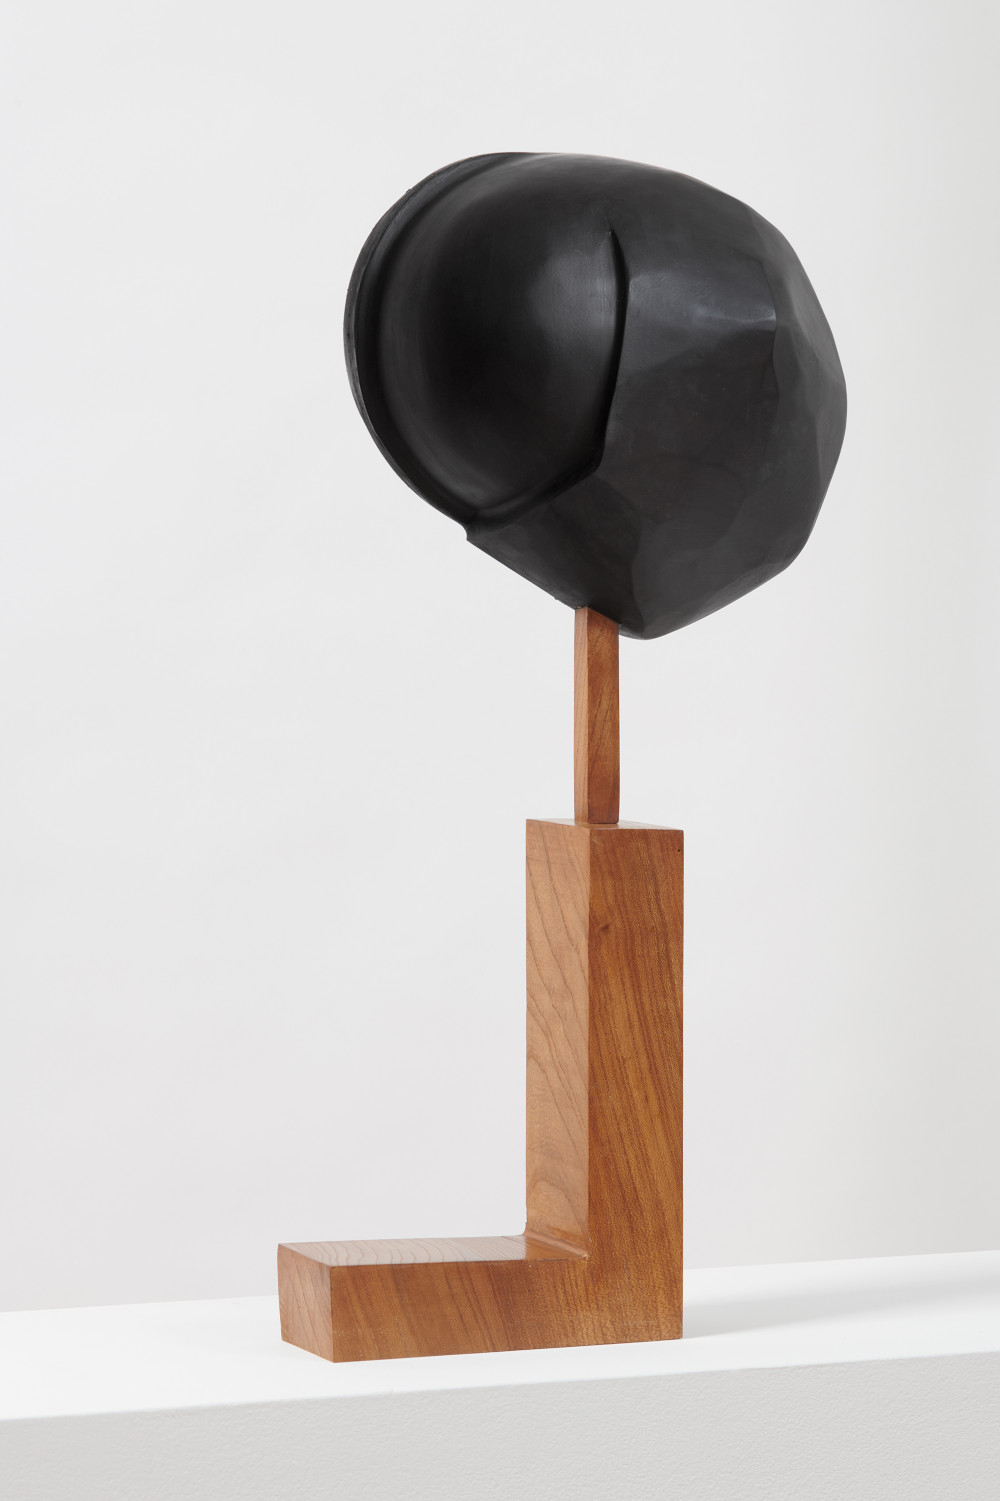 Christina Kruse, 2/2, 2018. Wood, acrylic paint, lacquer, wax, and varnish 25 x 10 x 11.5 inches